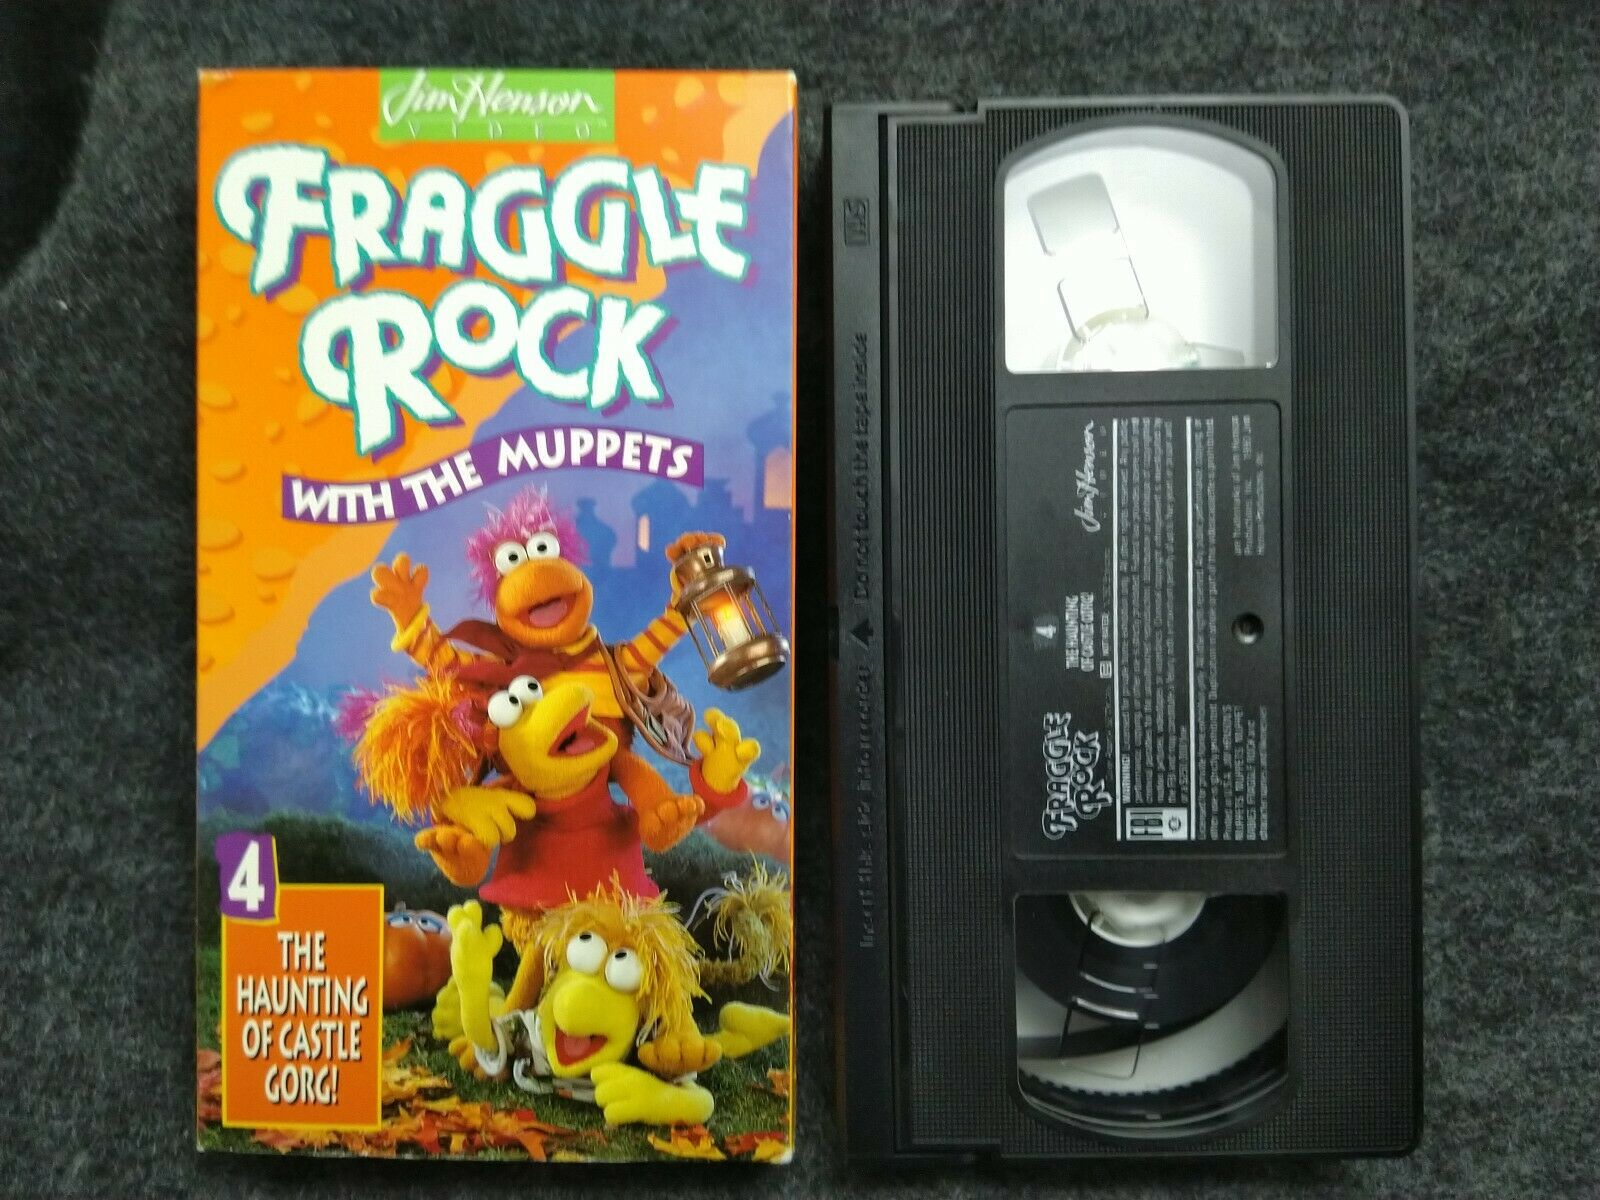 Fraggle Rock Vol. 4 The Haunting Of Castle Gorg (1993 VHS)